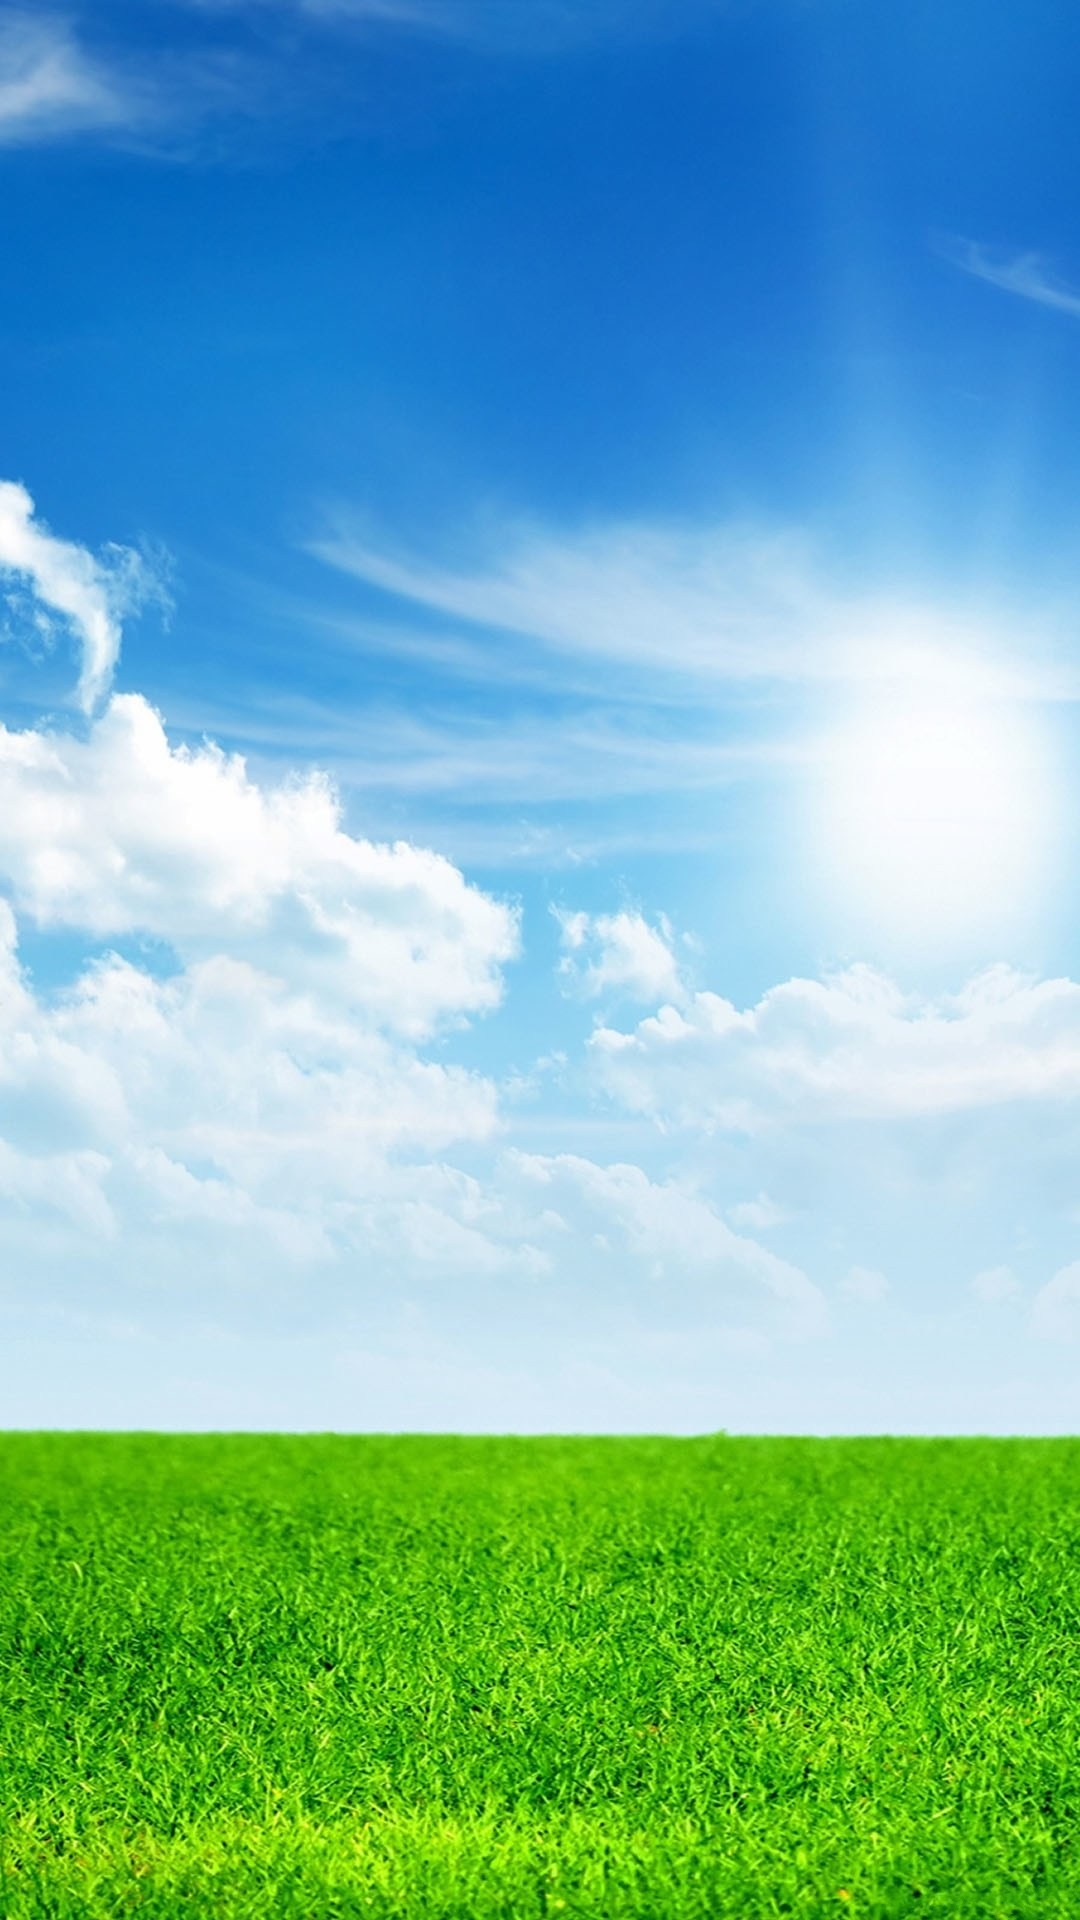 grass and sky wallpaper (71+ images)